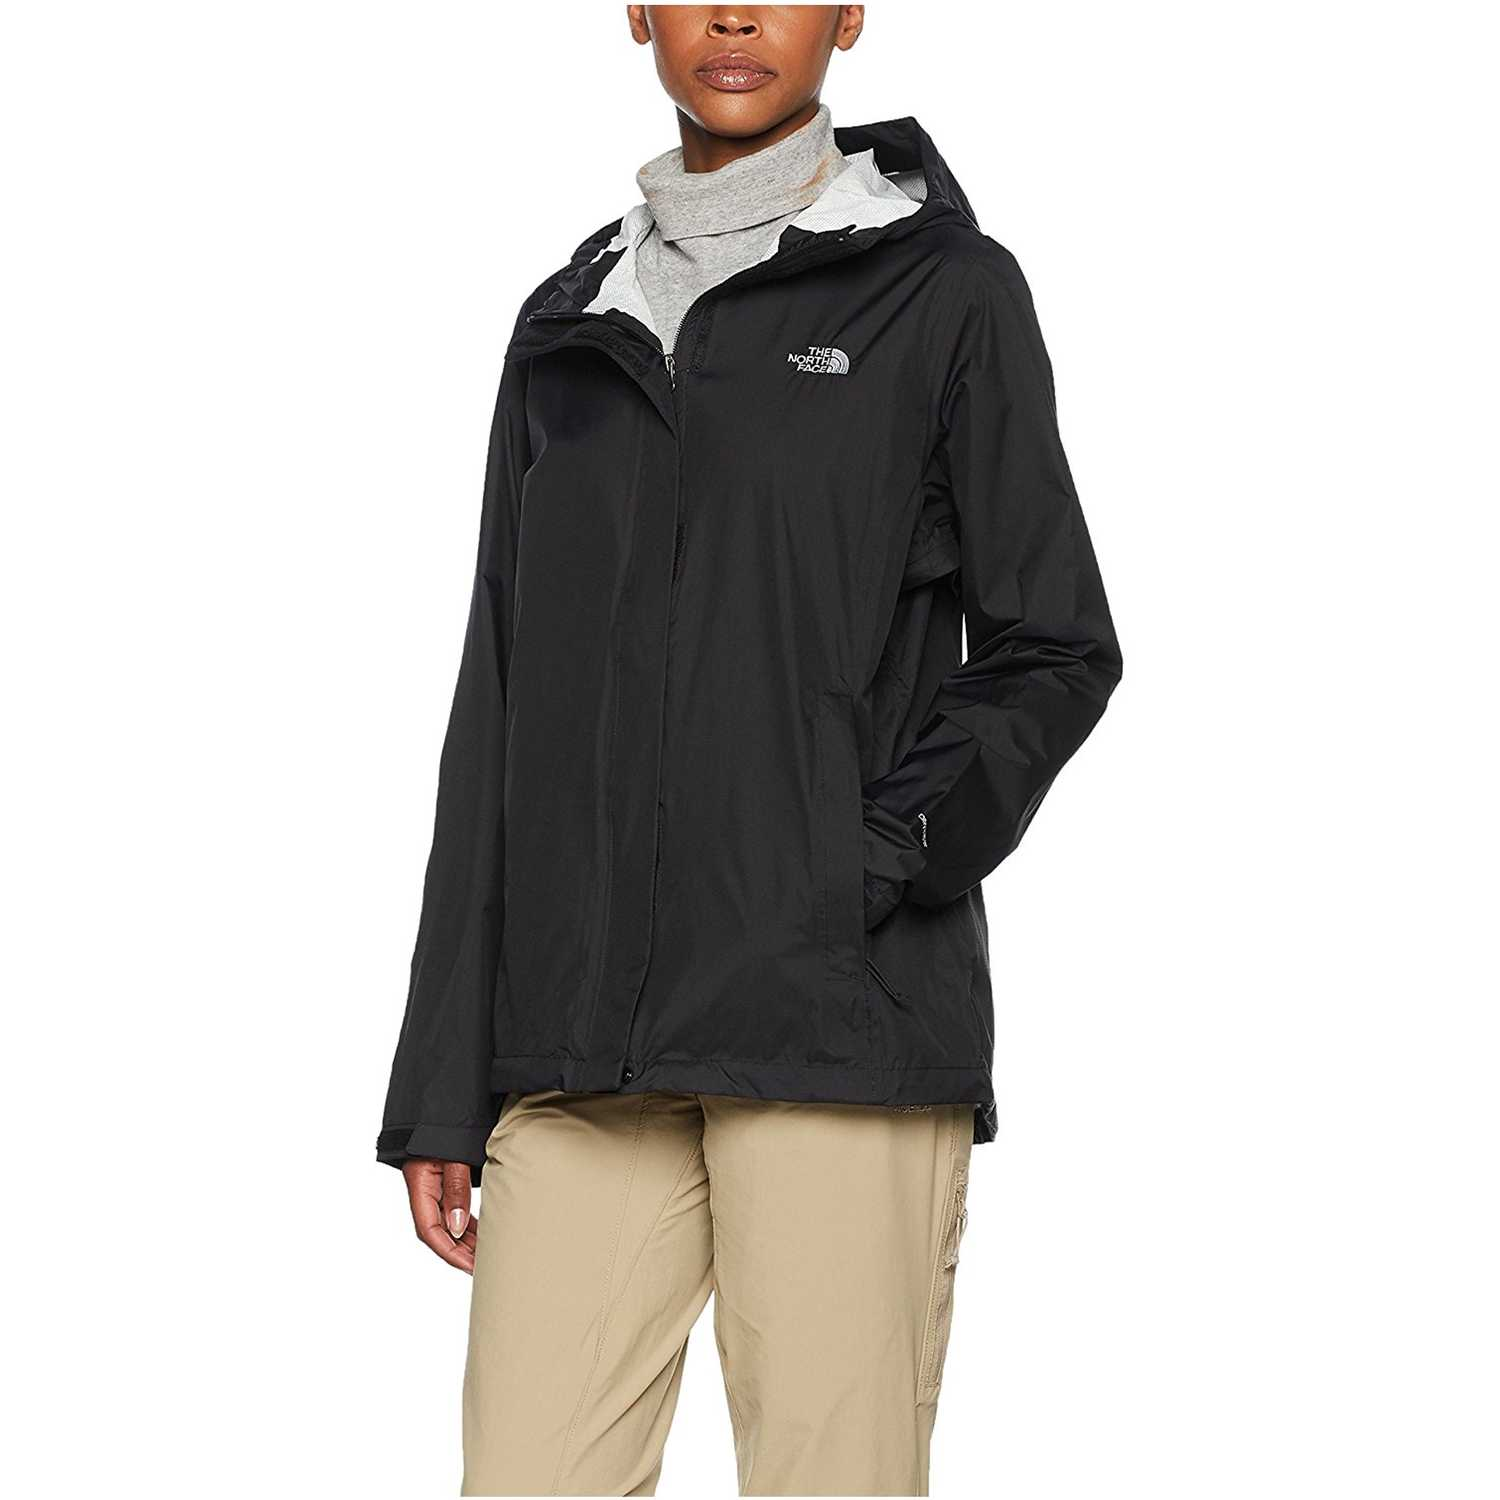 Negro Mujer 2 Casaca Venture De Face North The W Jacket q4pq6w5